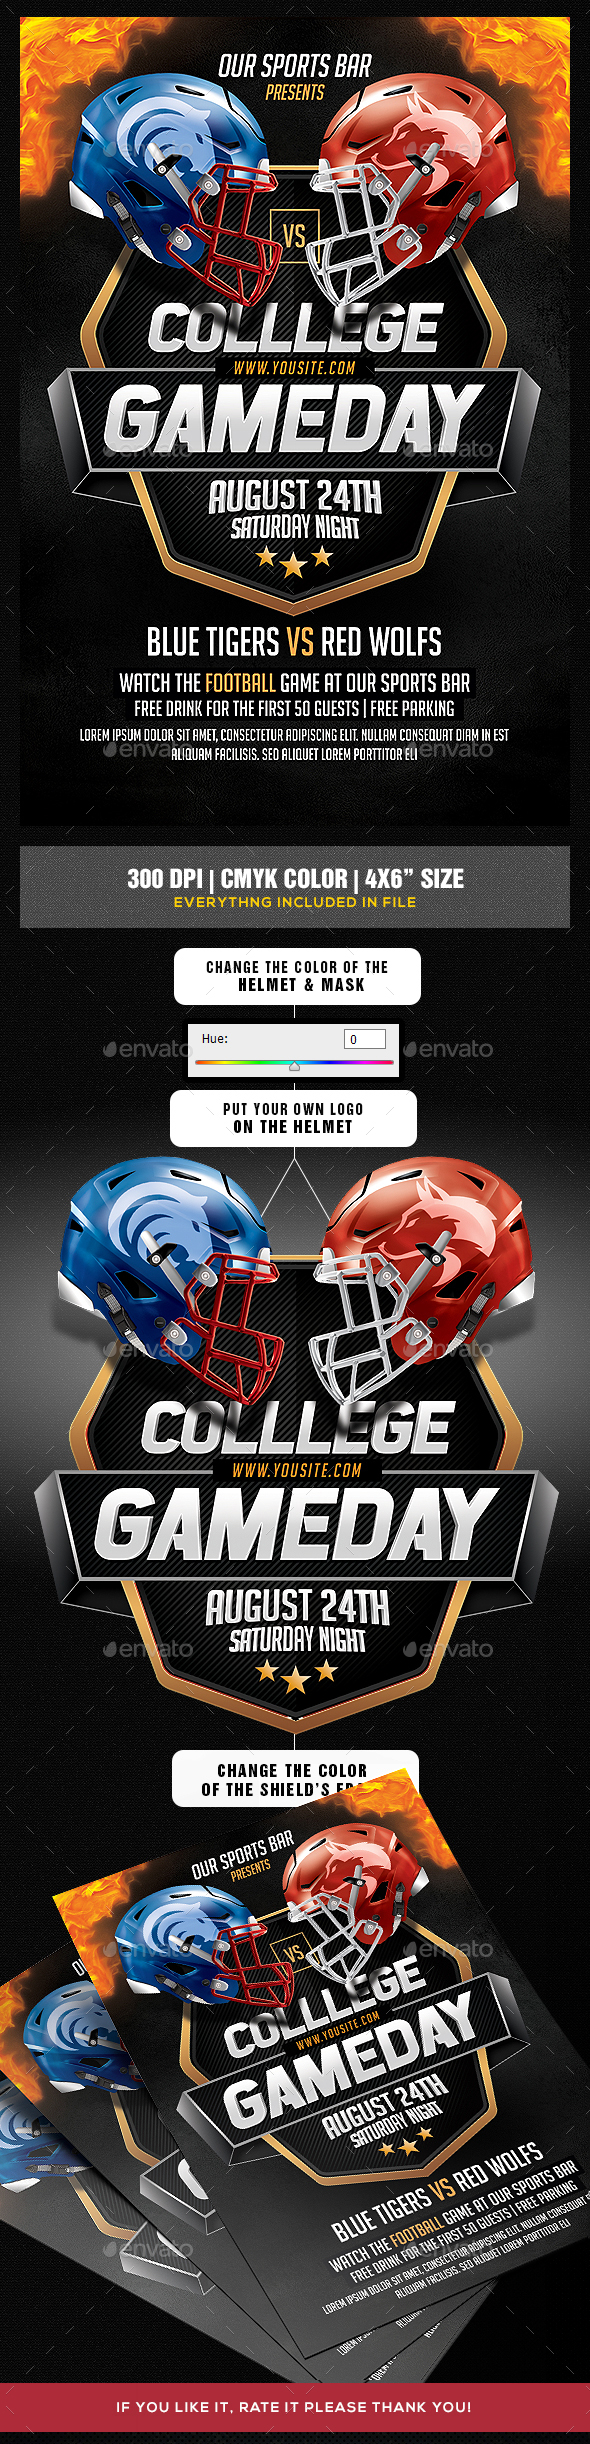 College Gameday Flyer Template - Sports Events